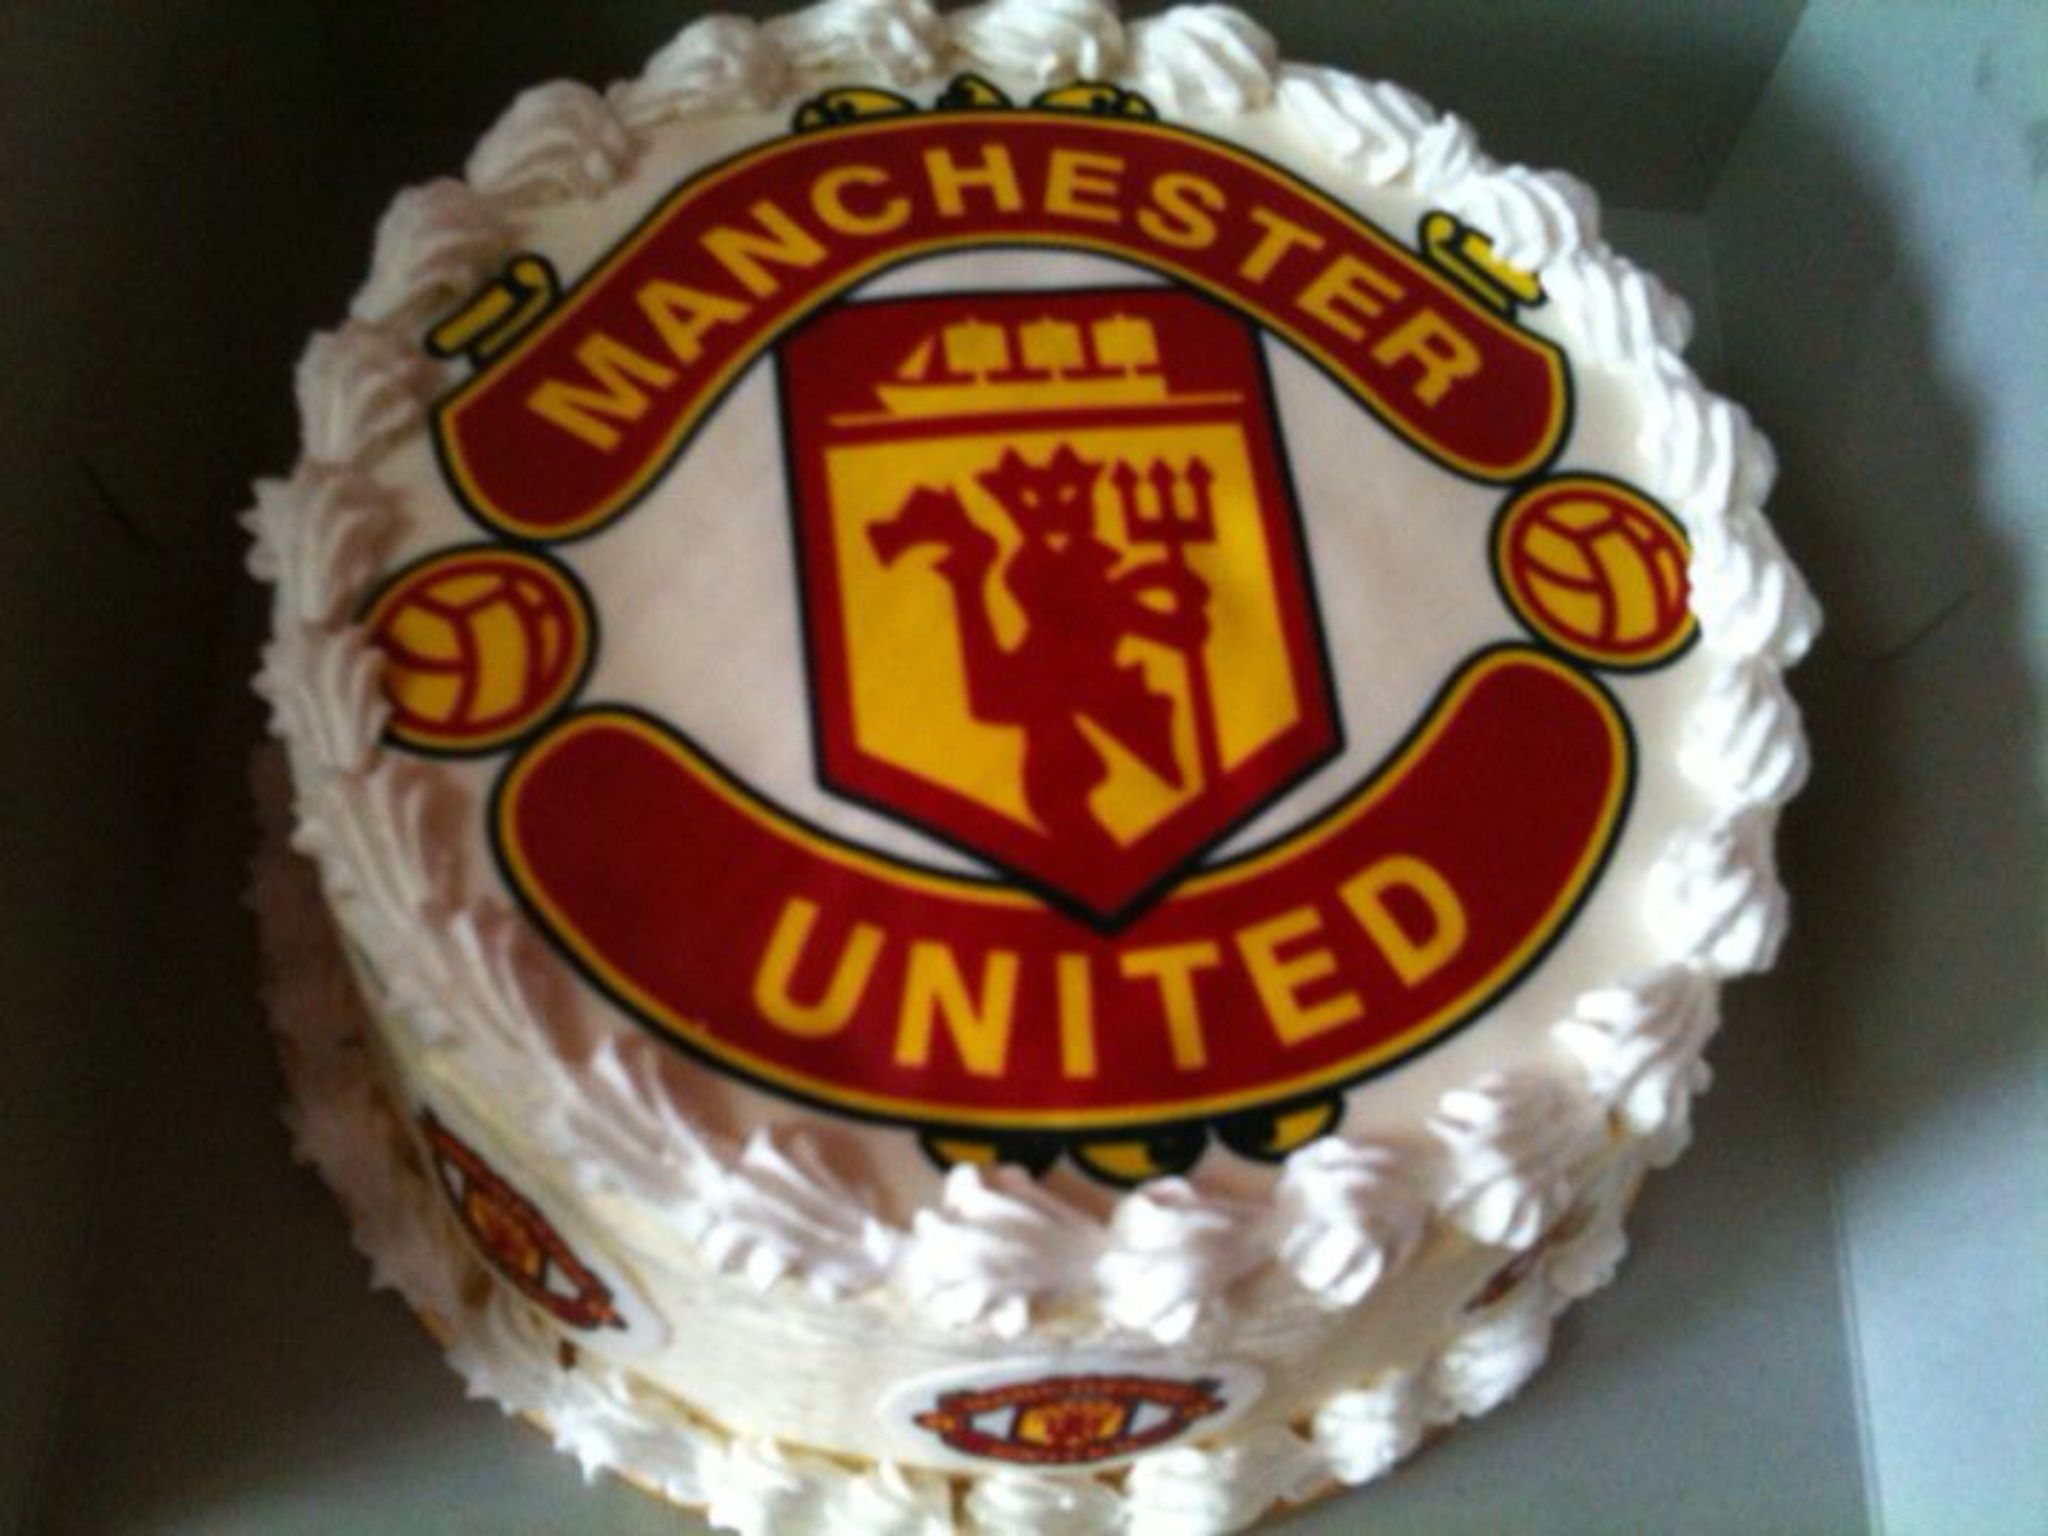 Manchester United Cake Birthday Treats Redvelvet Cake Frosting Creamcheese Manchester United Cake Cute Cakes Cake